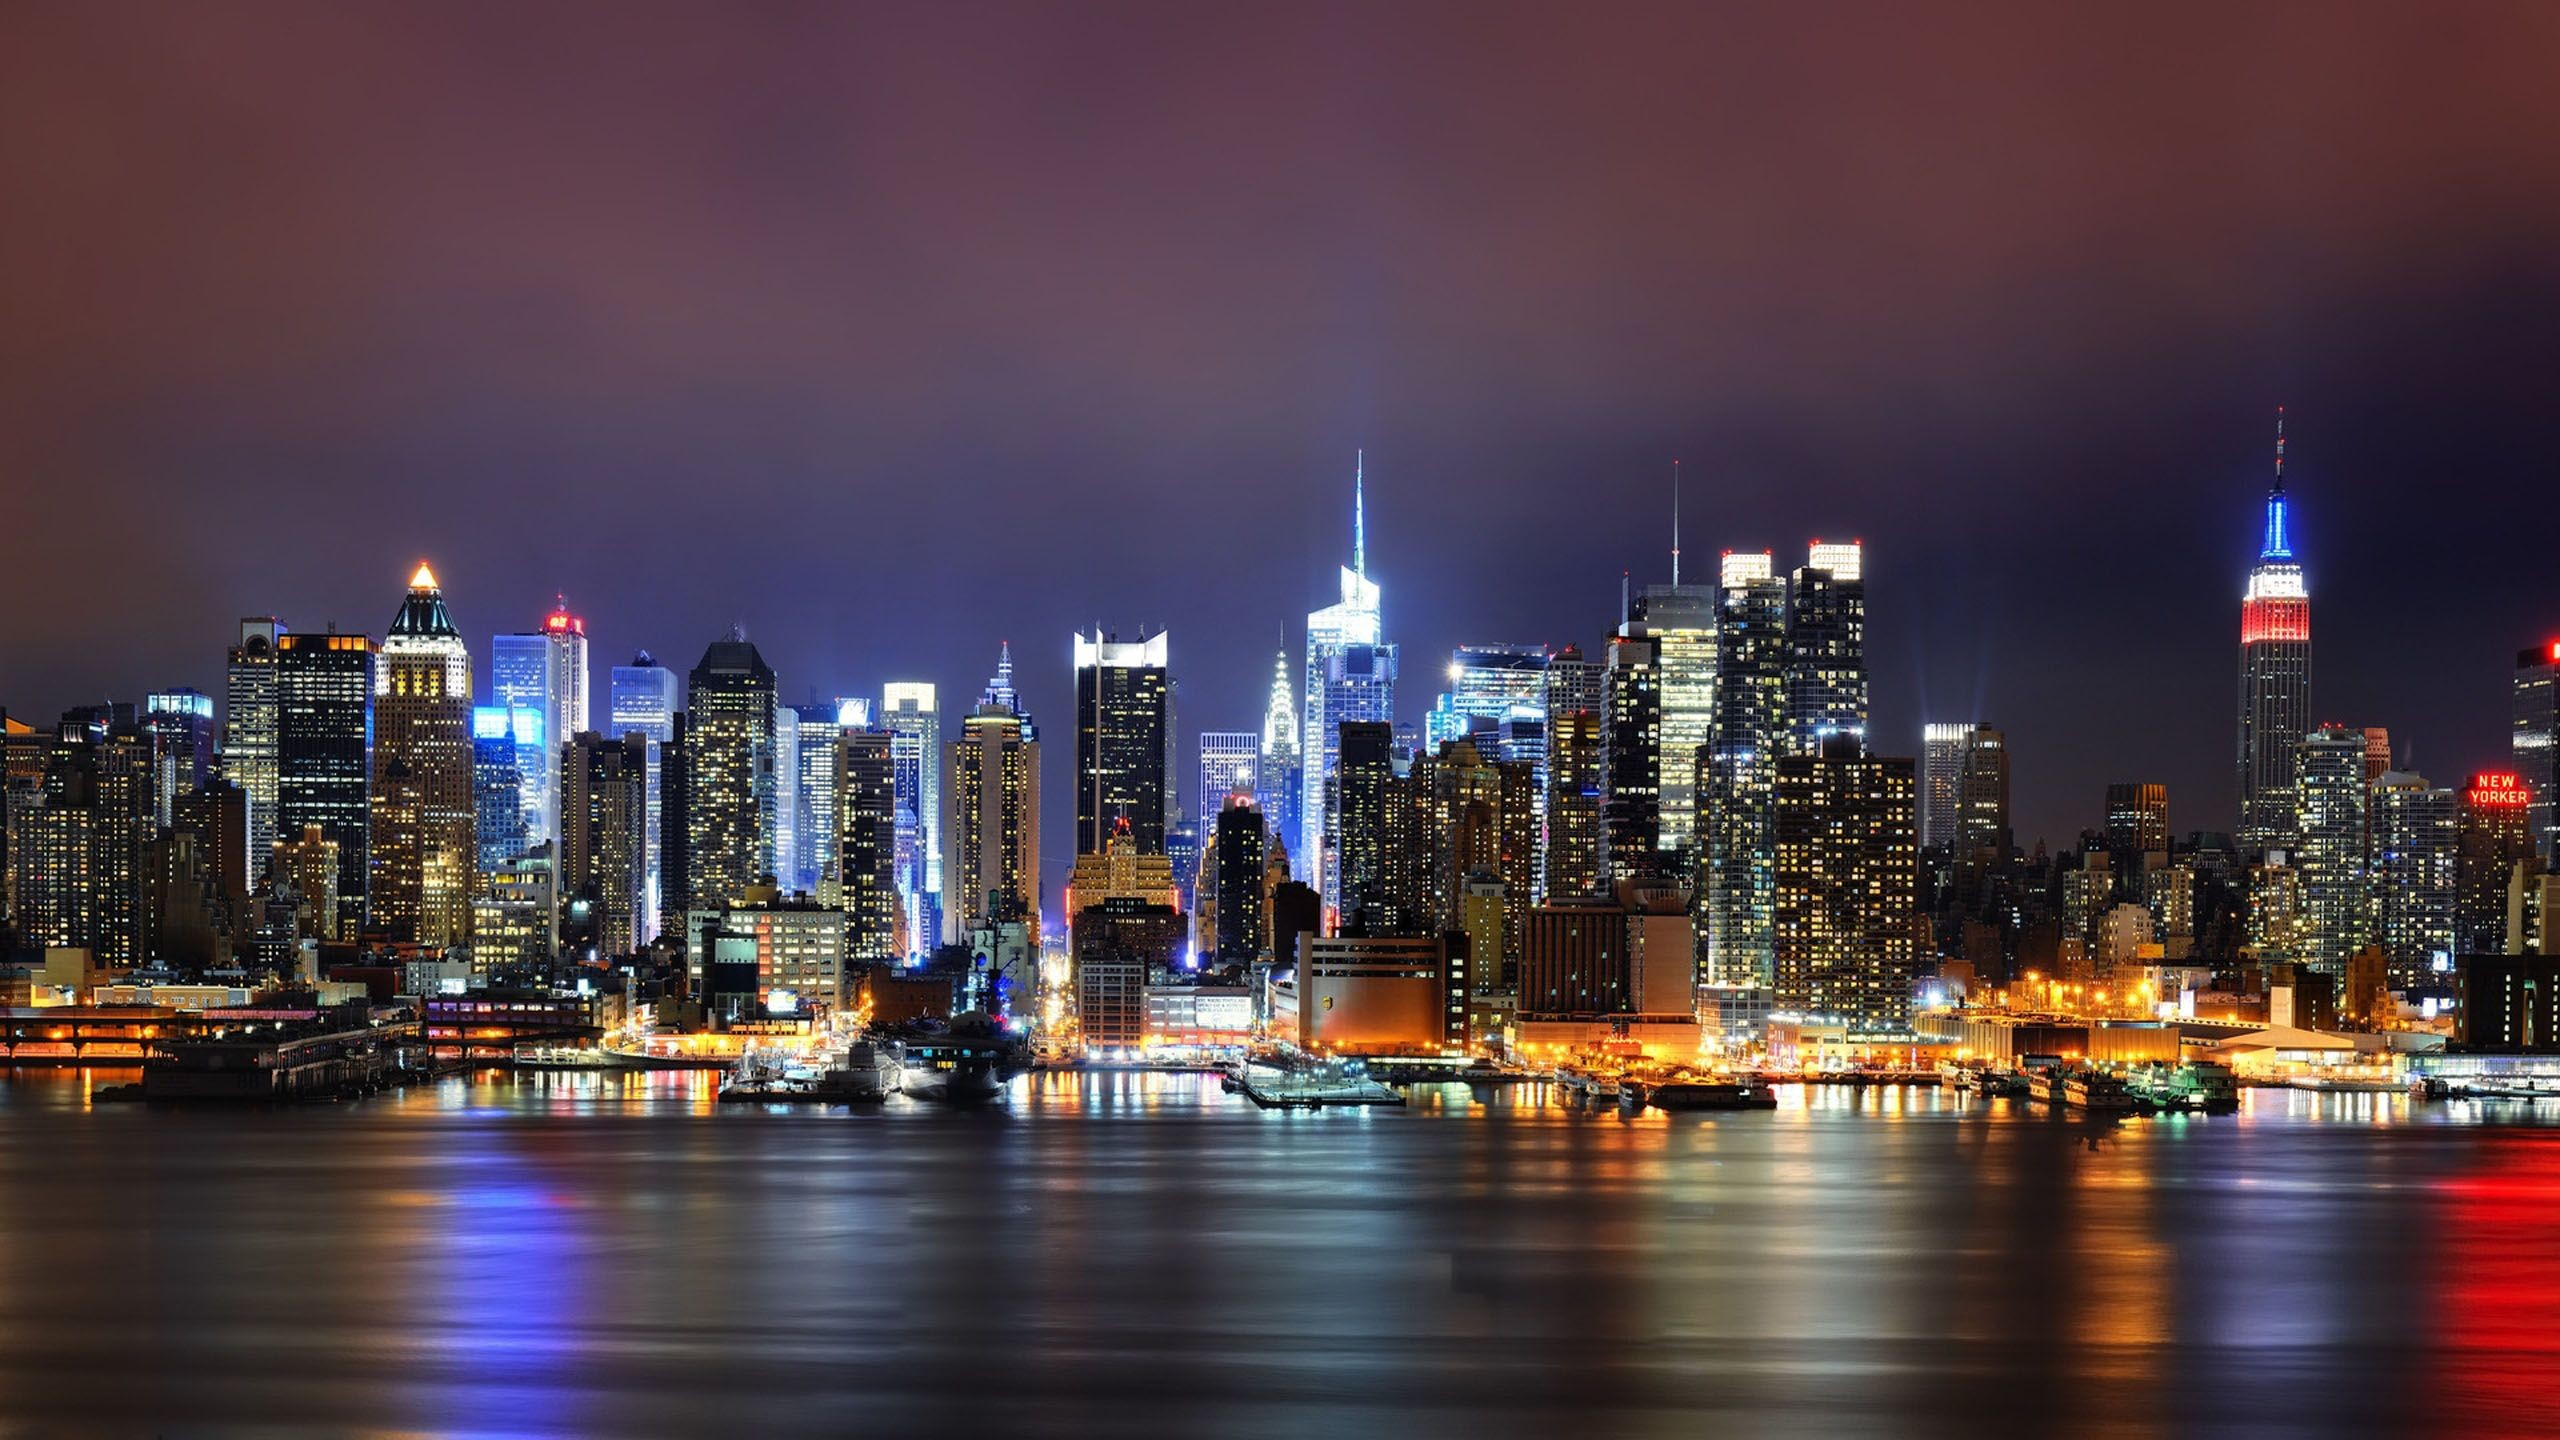 2560x1440 nyc skyline at night - Google Search